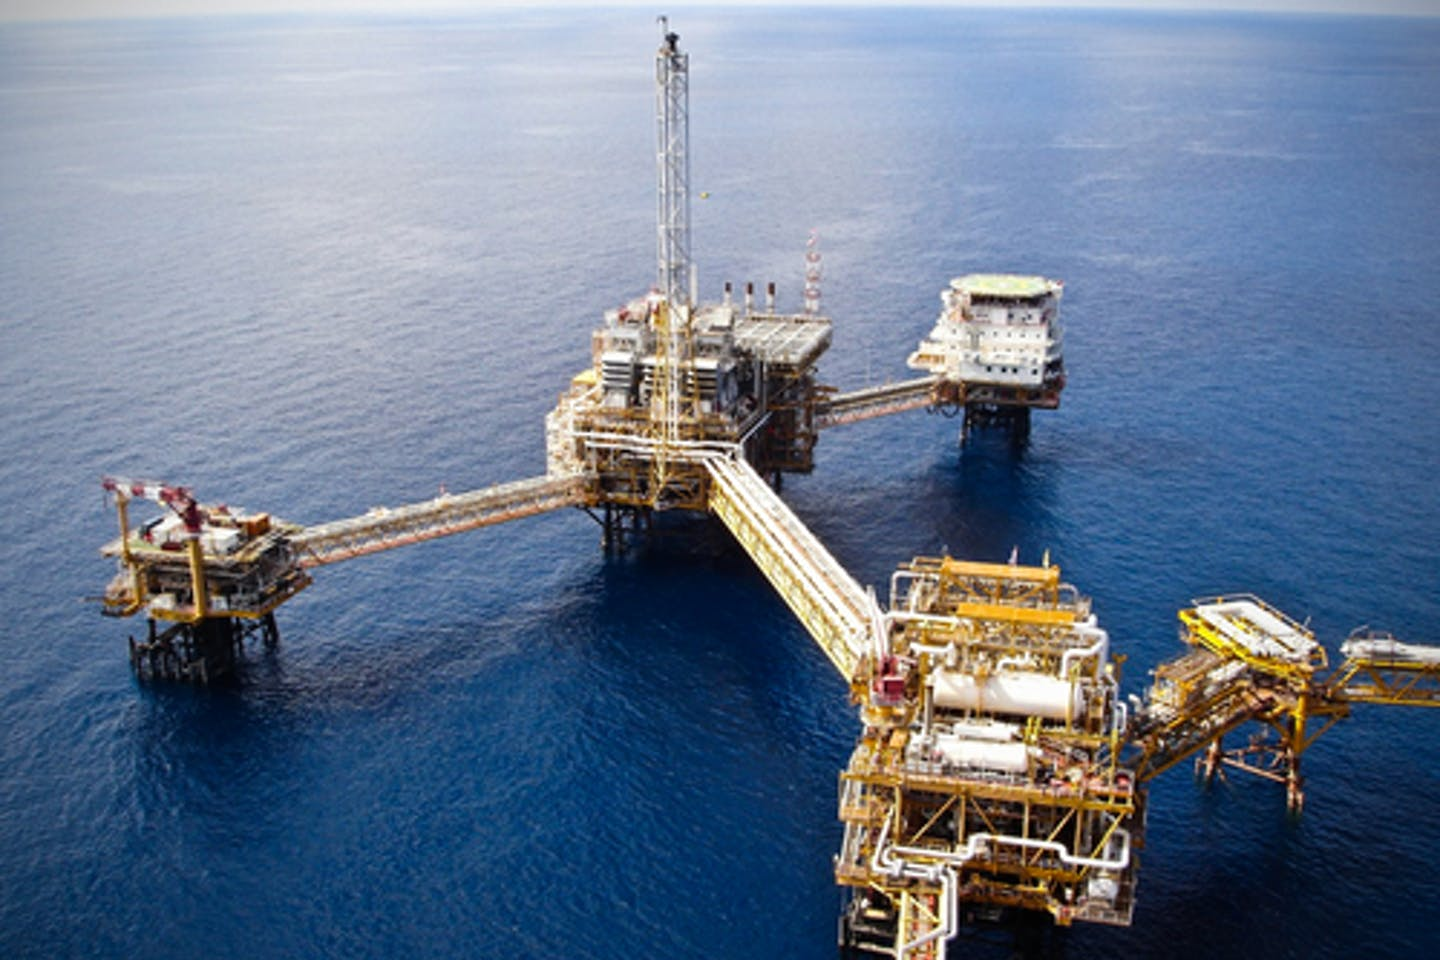 oil rig offshore